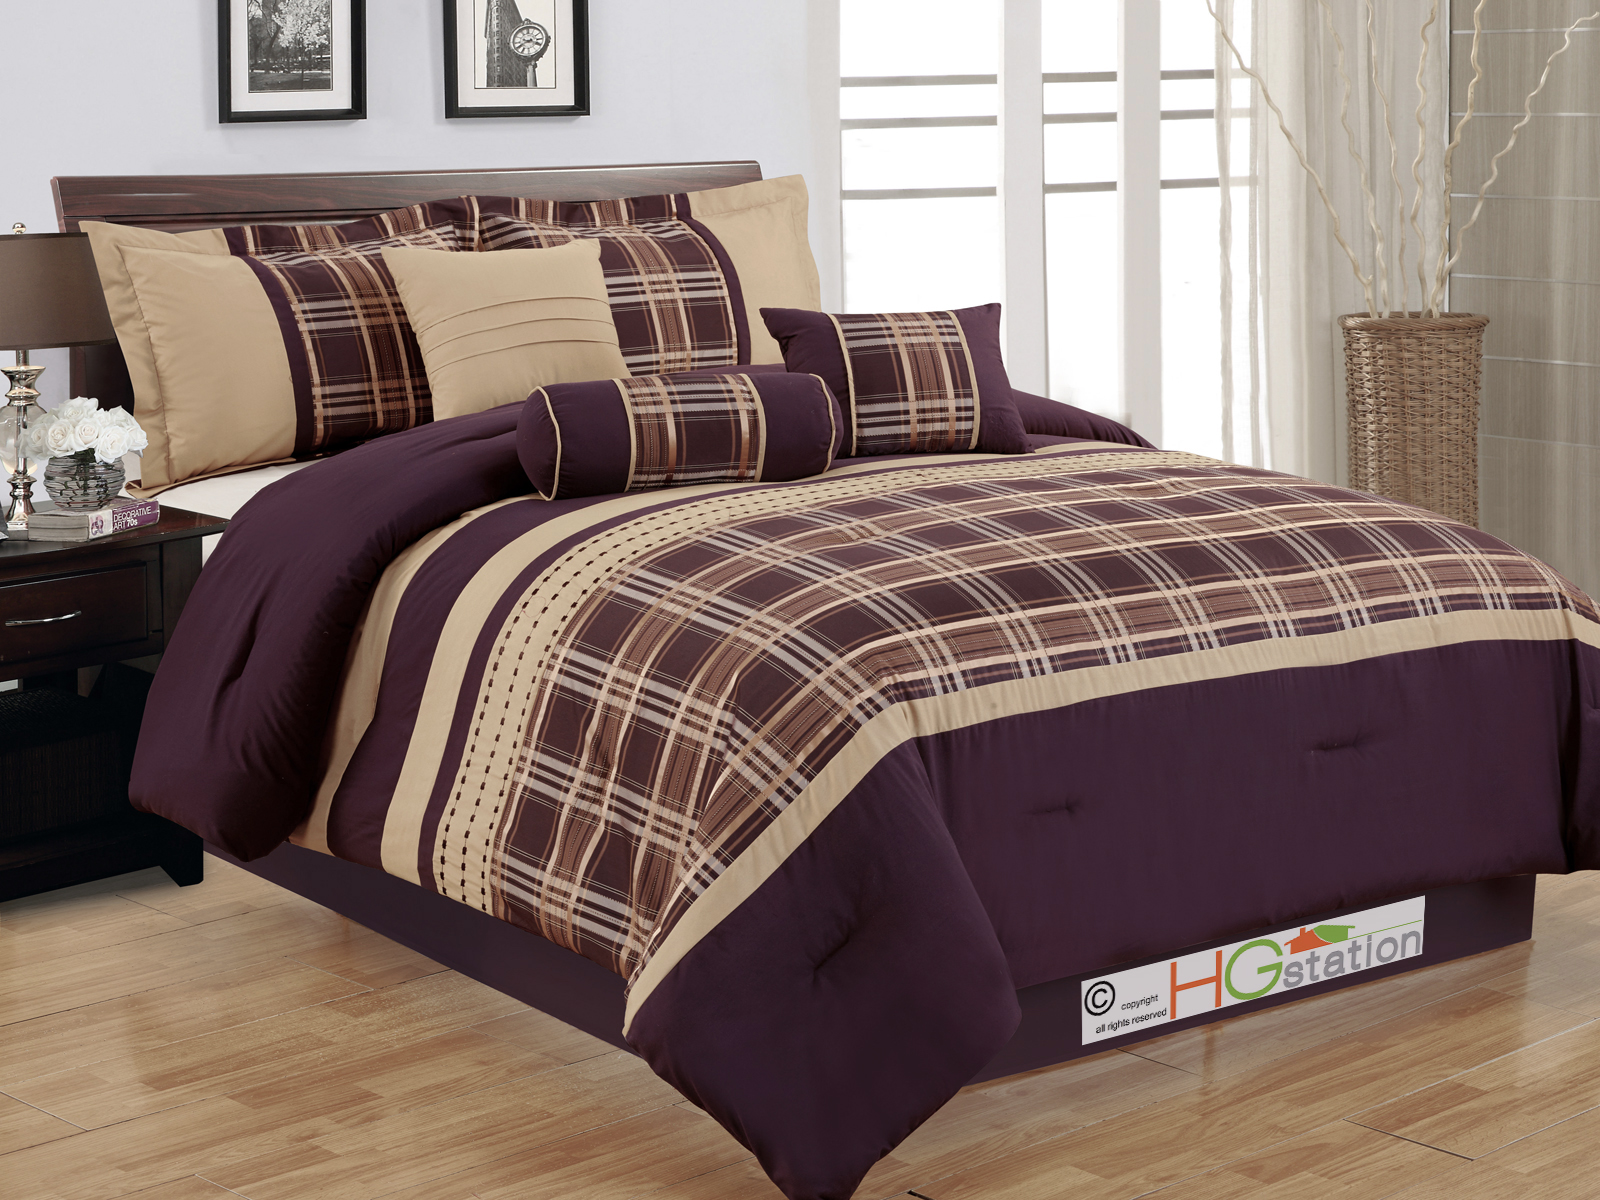 7 Pc Plaid Striped Embroidery Satin Comforter Set Coffee